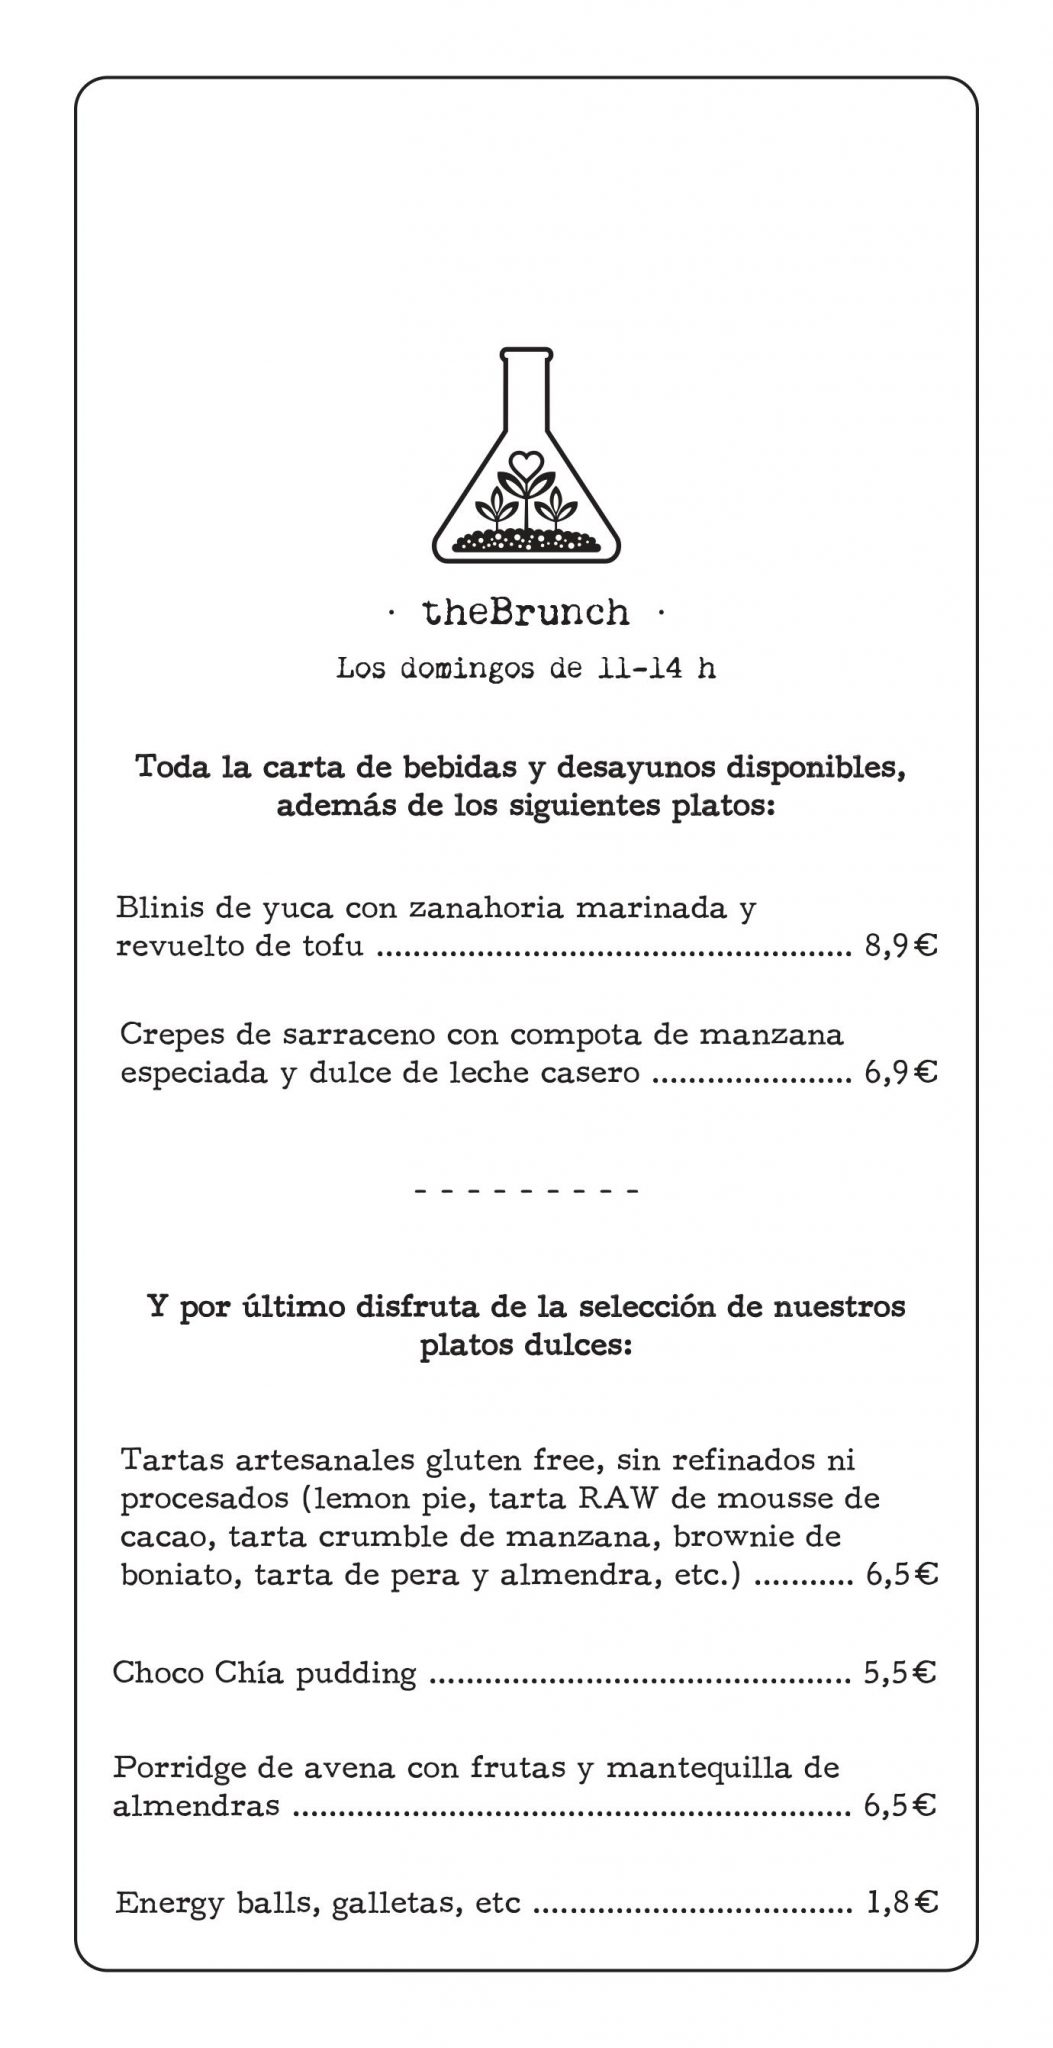 carta brunch vegano theveggielab